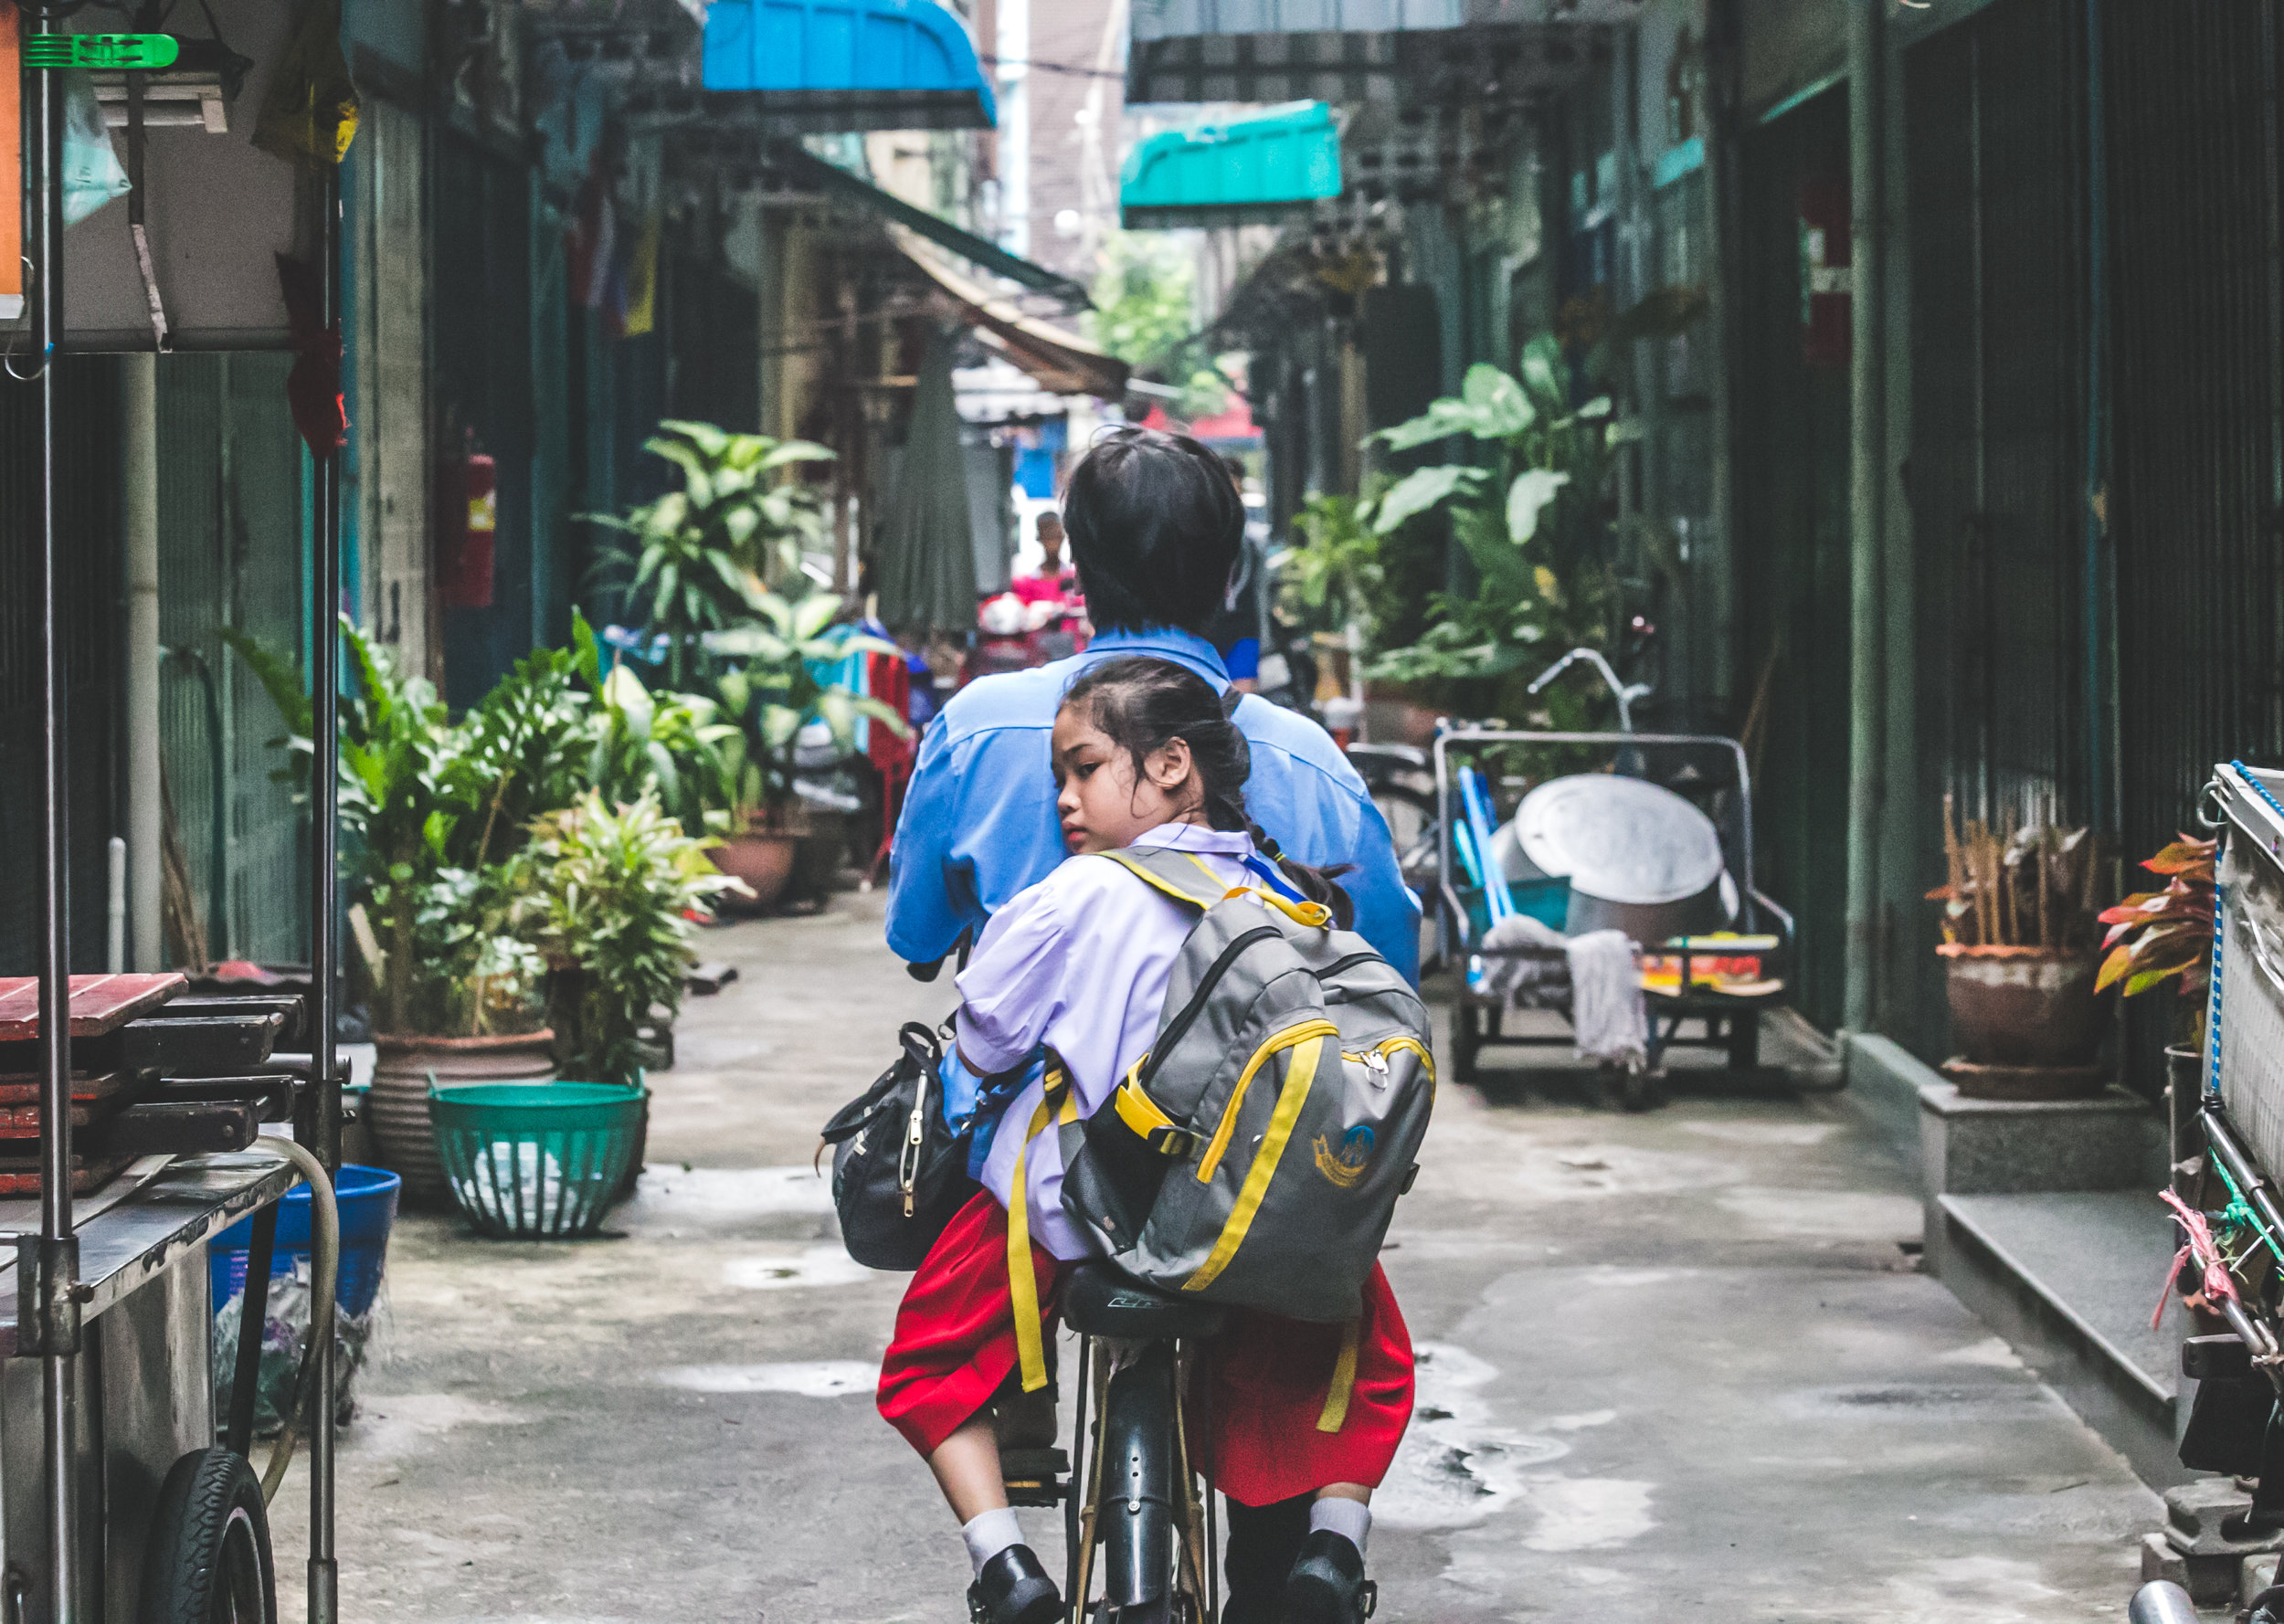 A girl holds on to the back of her father as they travel down a small alleyway on the family motorbike. It isn't uncommon to see 2-3+ people riding on the same one-person bike - especially small children.